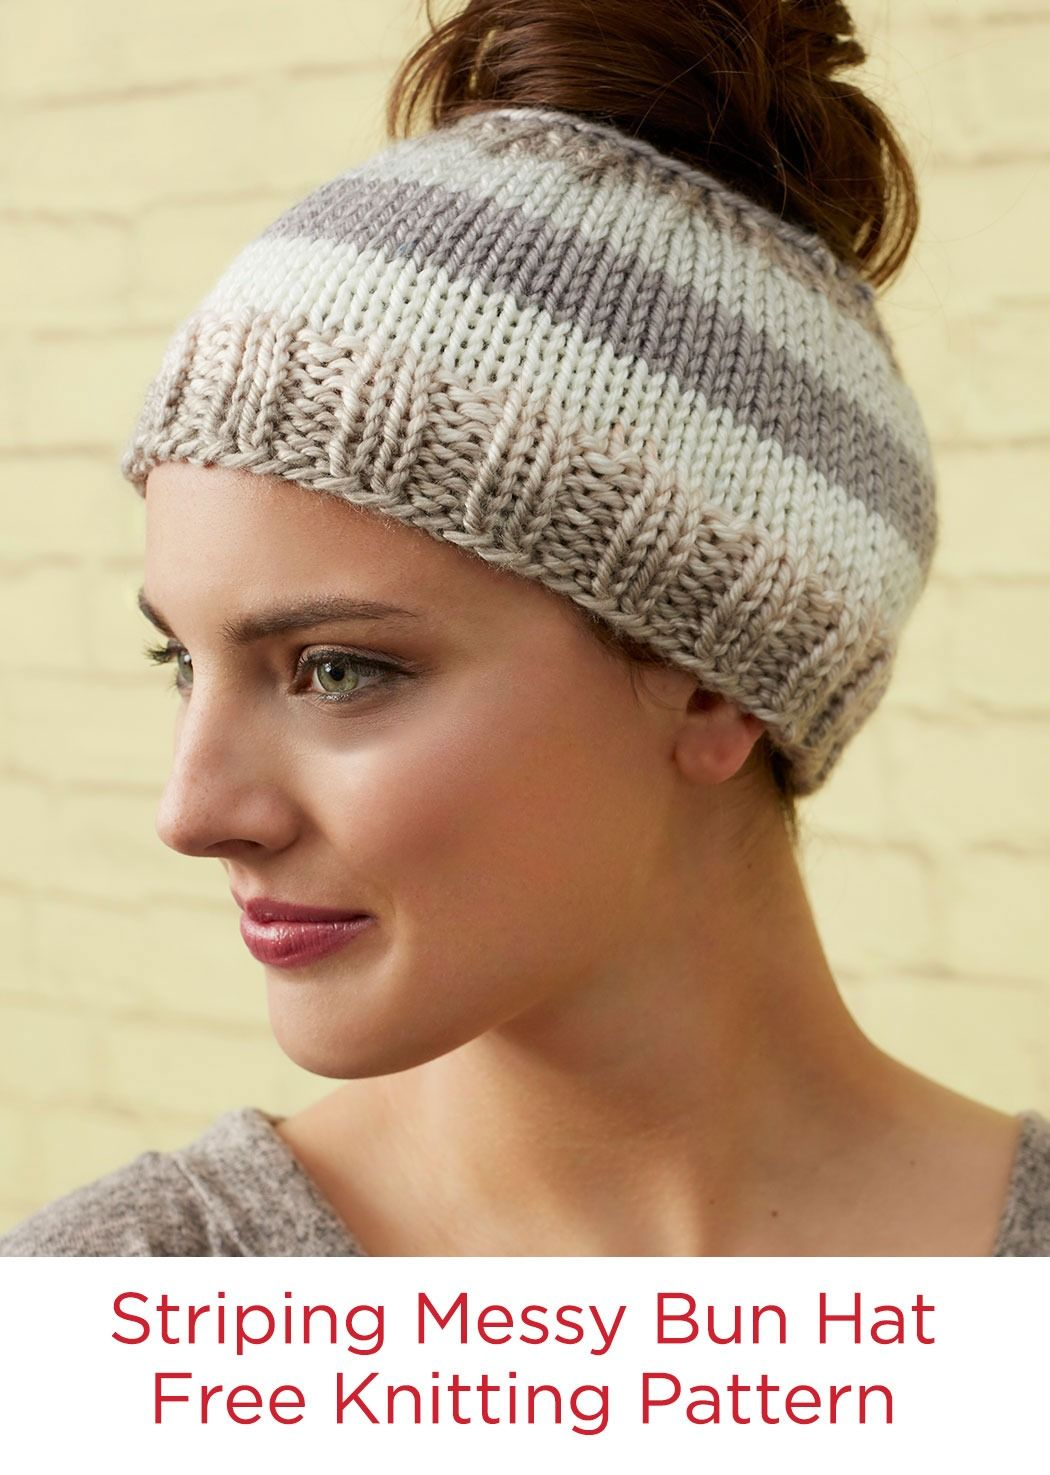 Striping messy bun hat free knitting pattern in red heart soft free knitting pattern for striping messy bun hat laura bains easy ponytail hat is suitable for beginners the striping is made with self striping yarn bankloansurffo Images